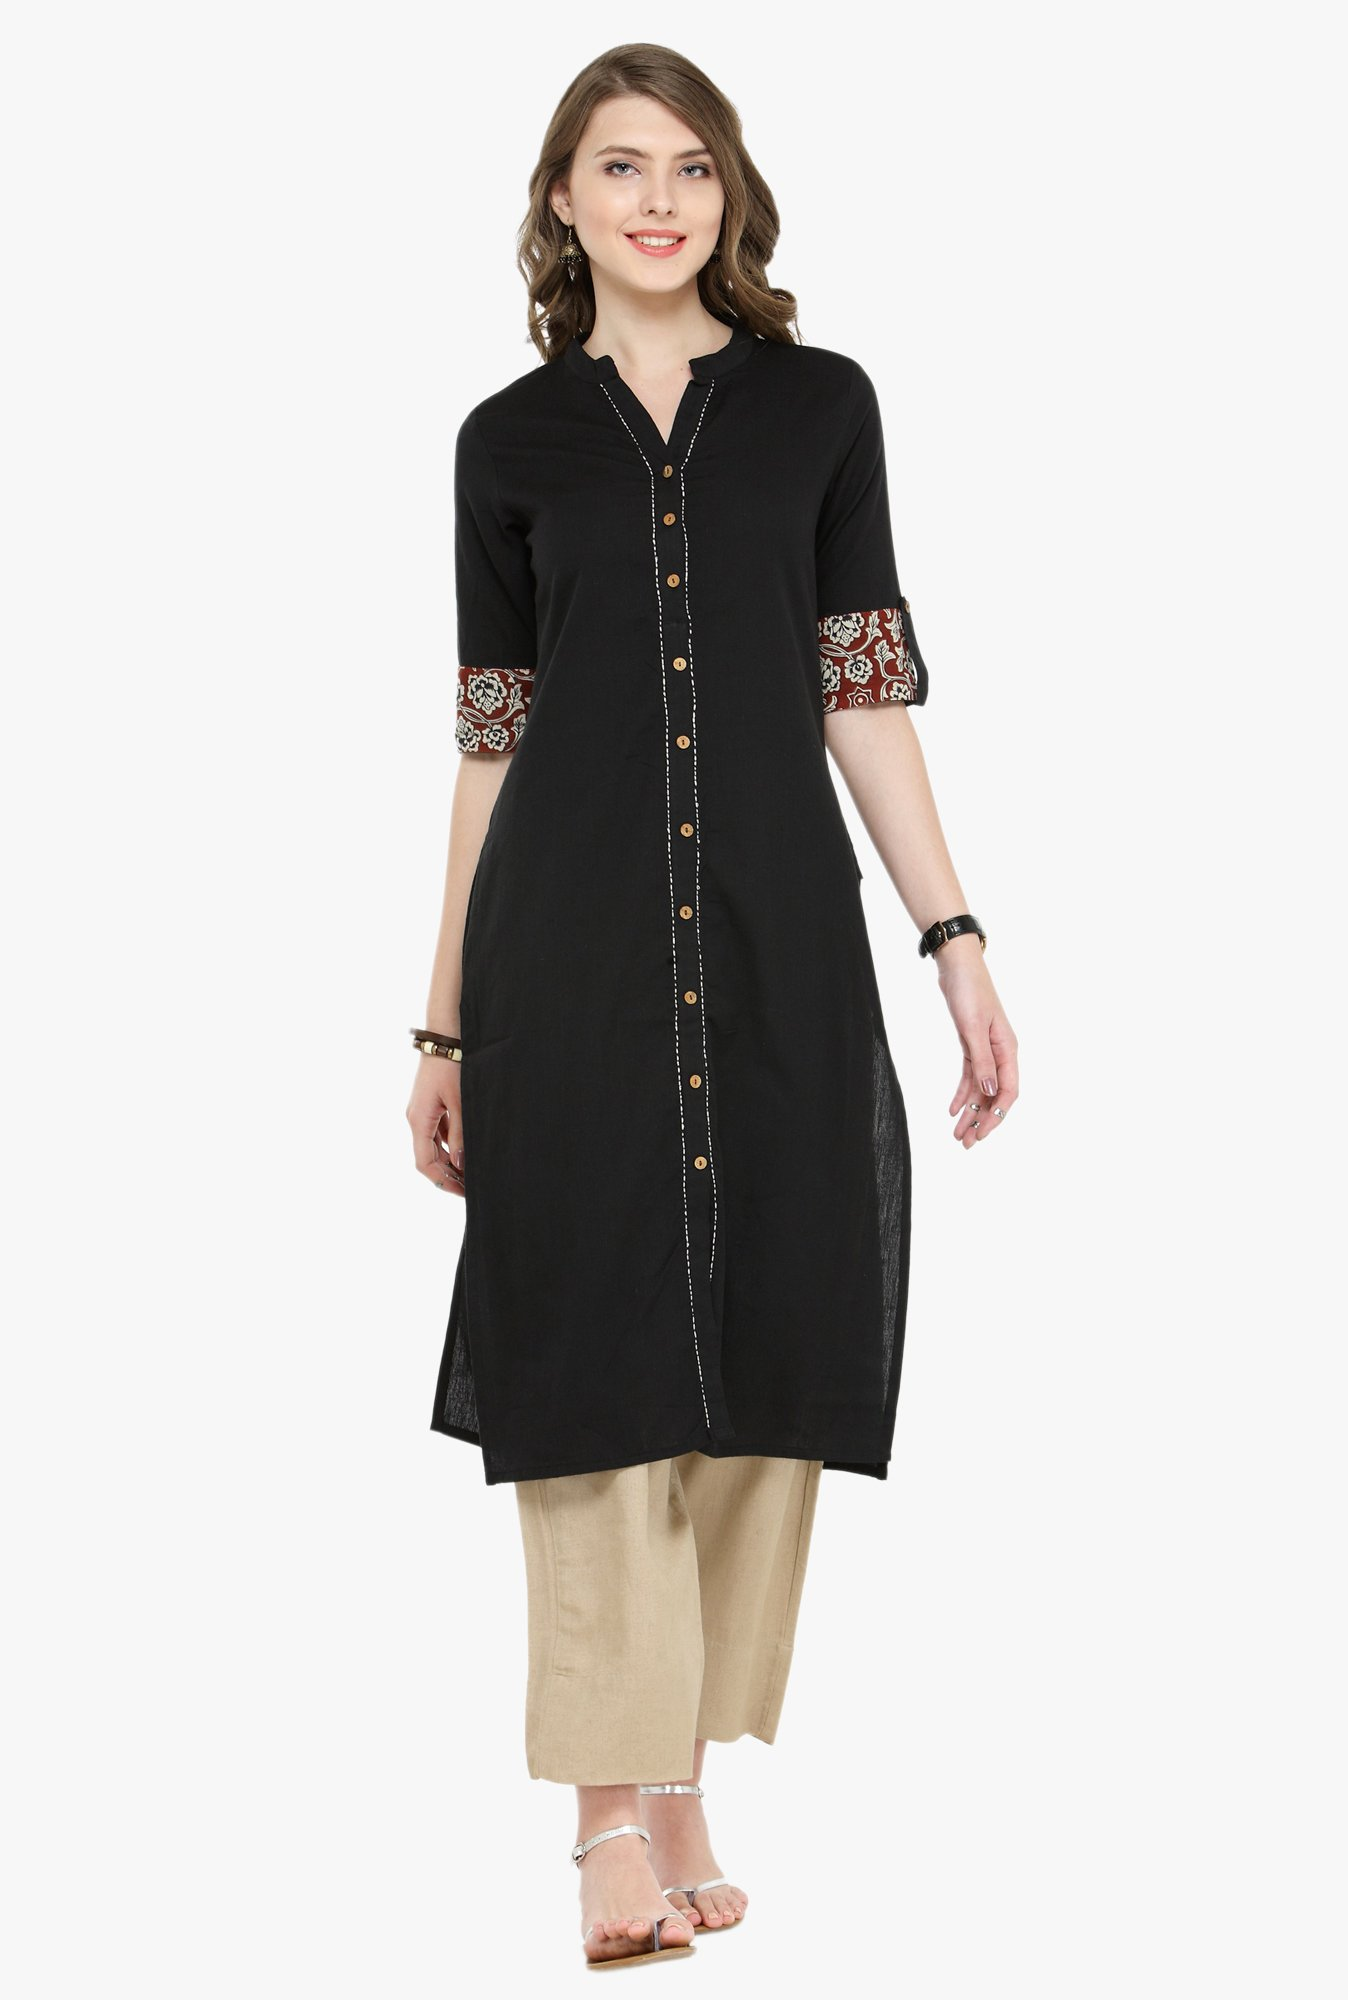 Varanga Black & Beige Cotton Kurta With Pants